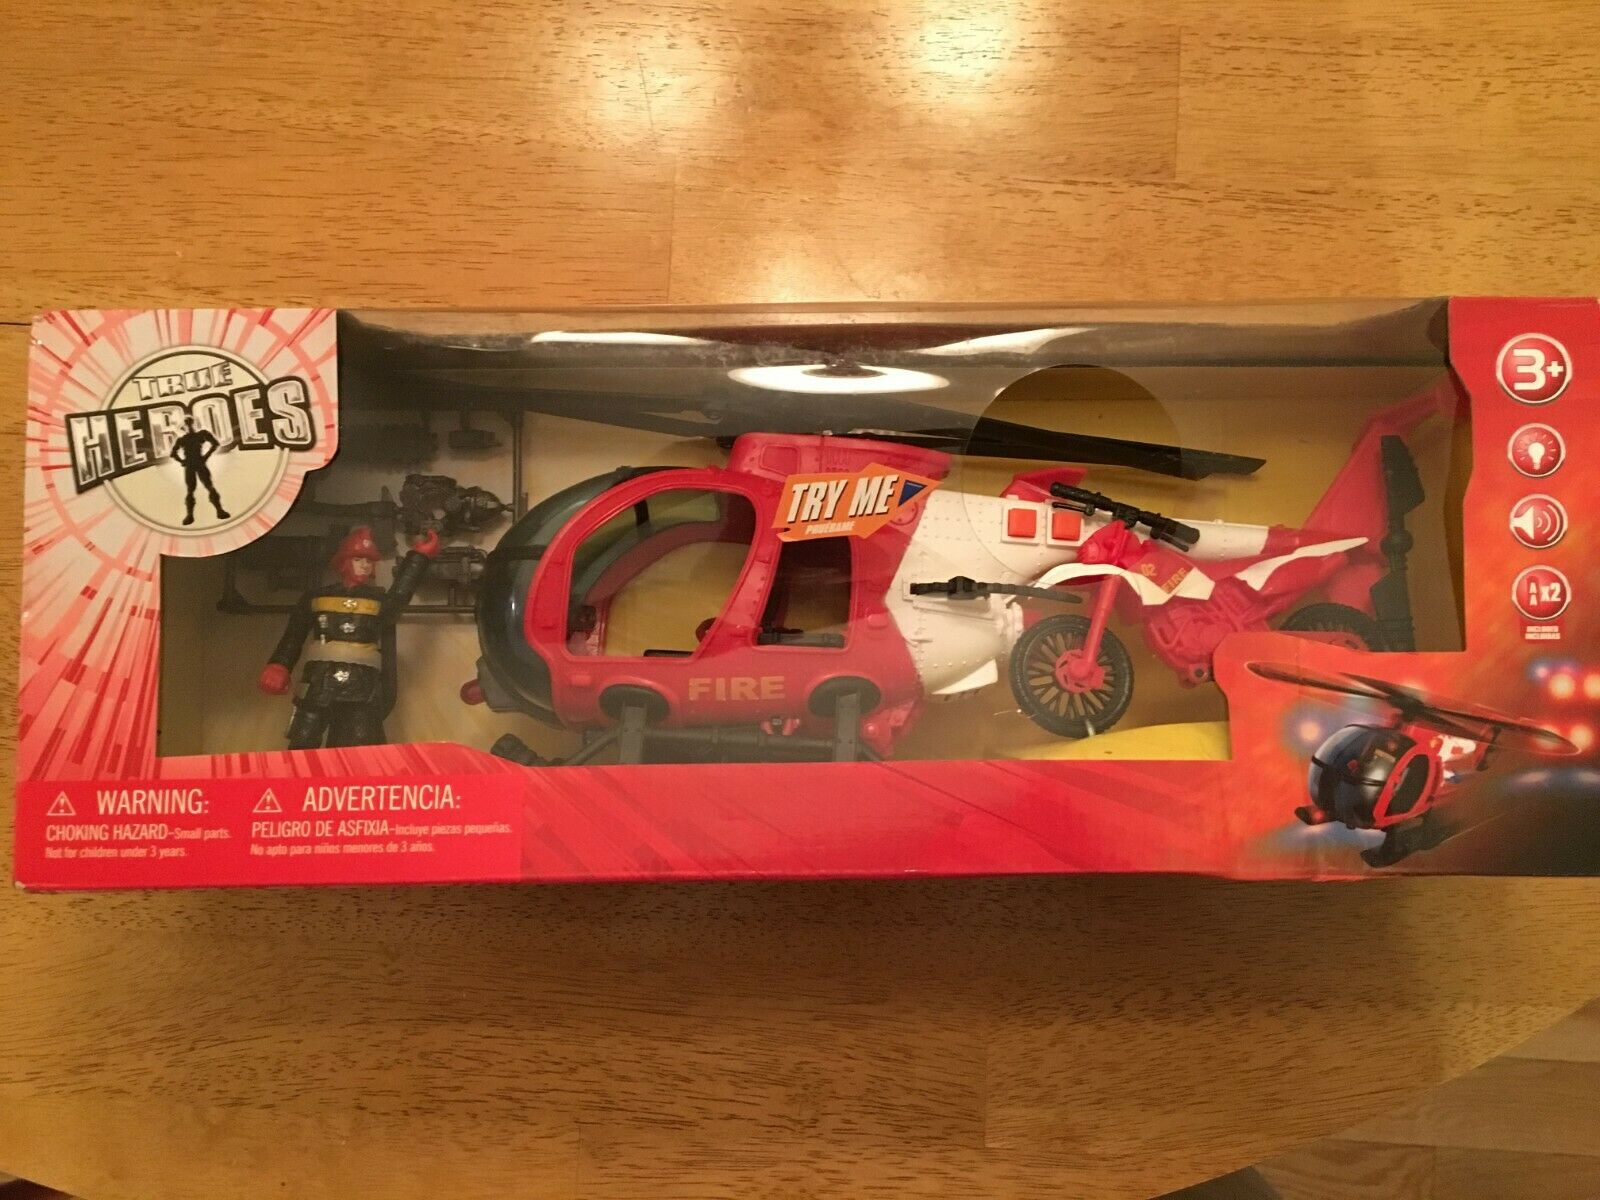 TRUE HEROES Rescue Patrol giocattoli R Us Helicopter e Motorcycle Playset nuovo RARE